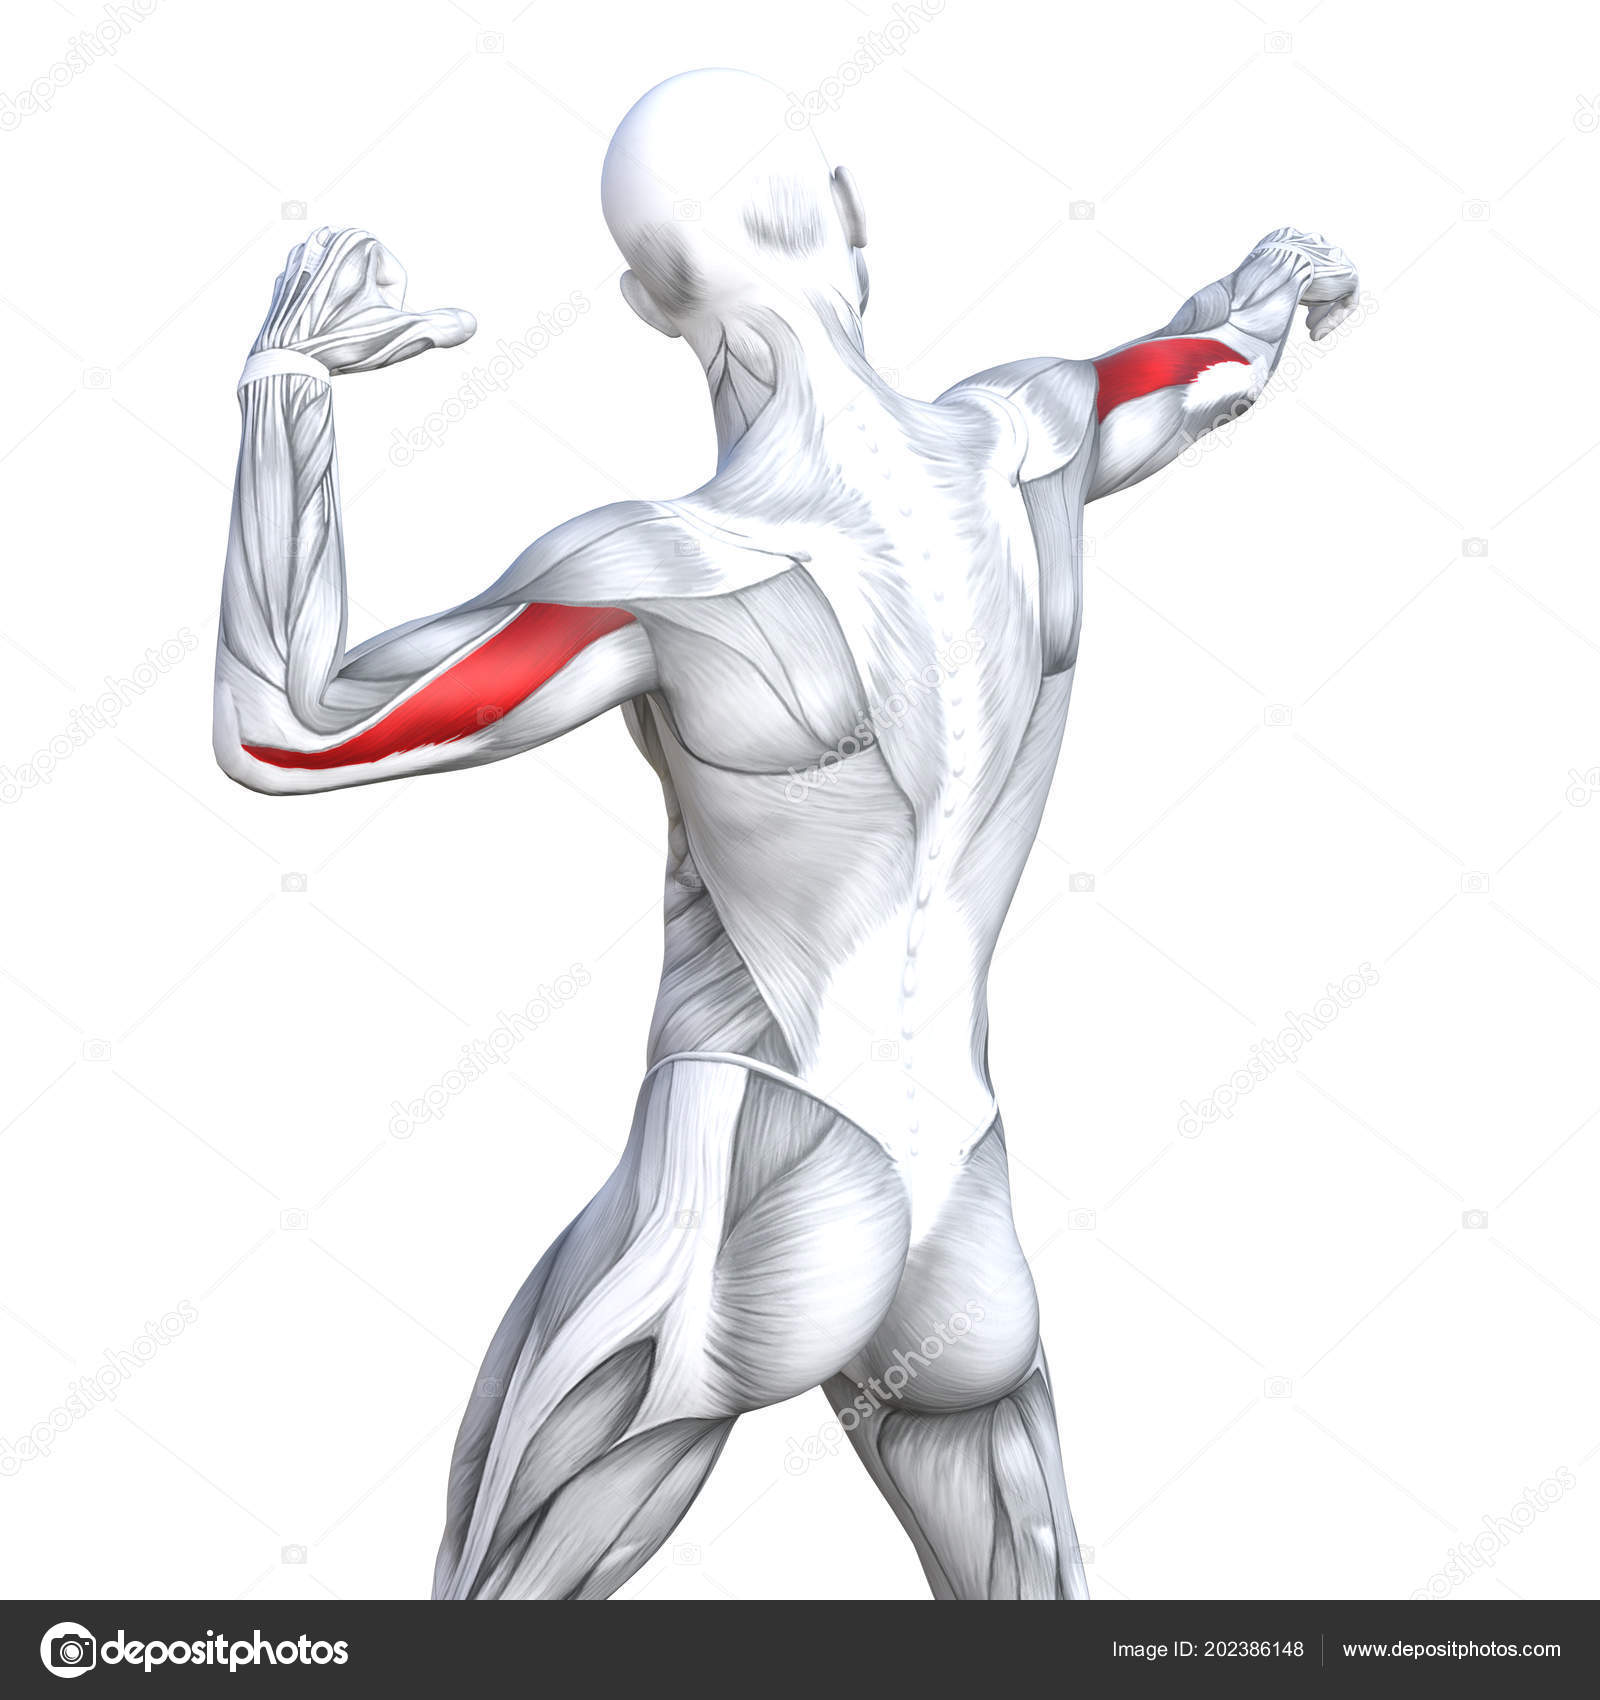 Concept Conceptual Illustration Triceps Fit Strong Human Anatomy